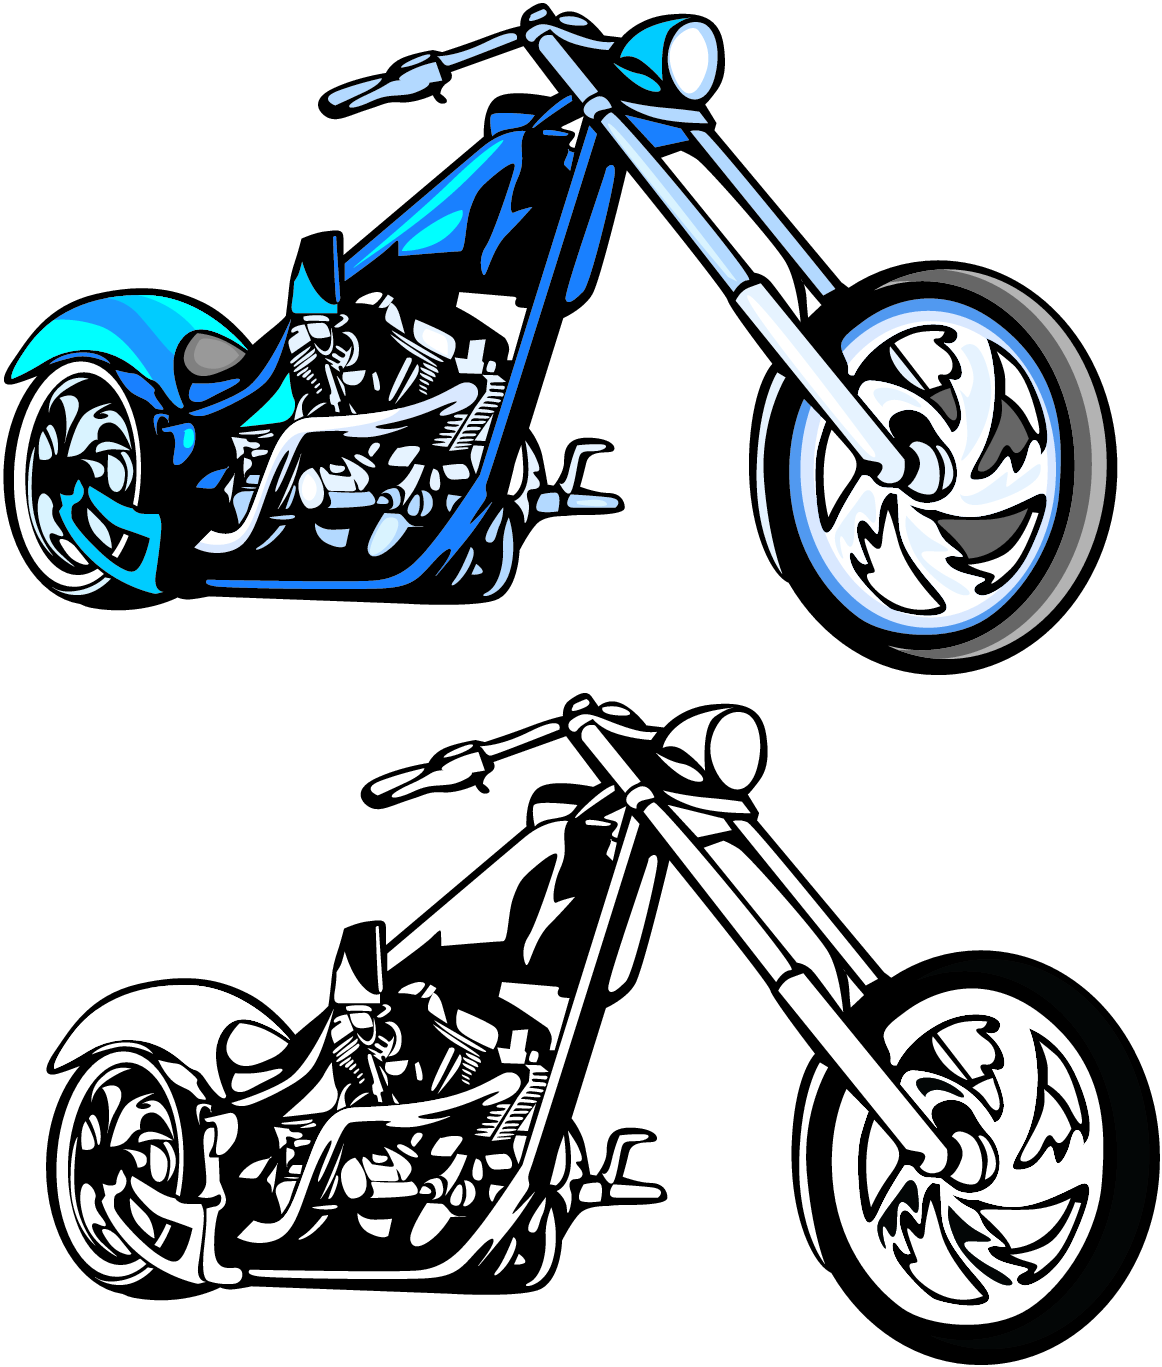 harley davidson silhouette images at getdrawings com free for rh getdrawings com